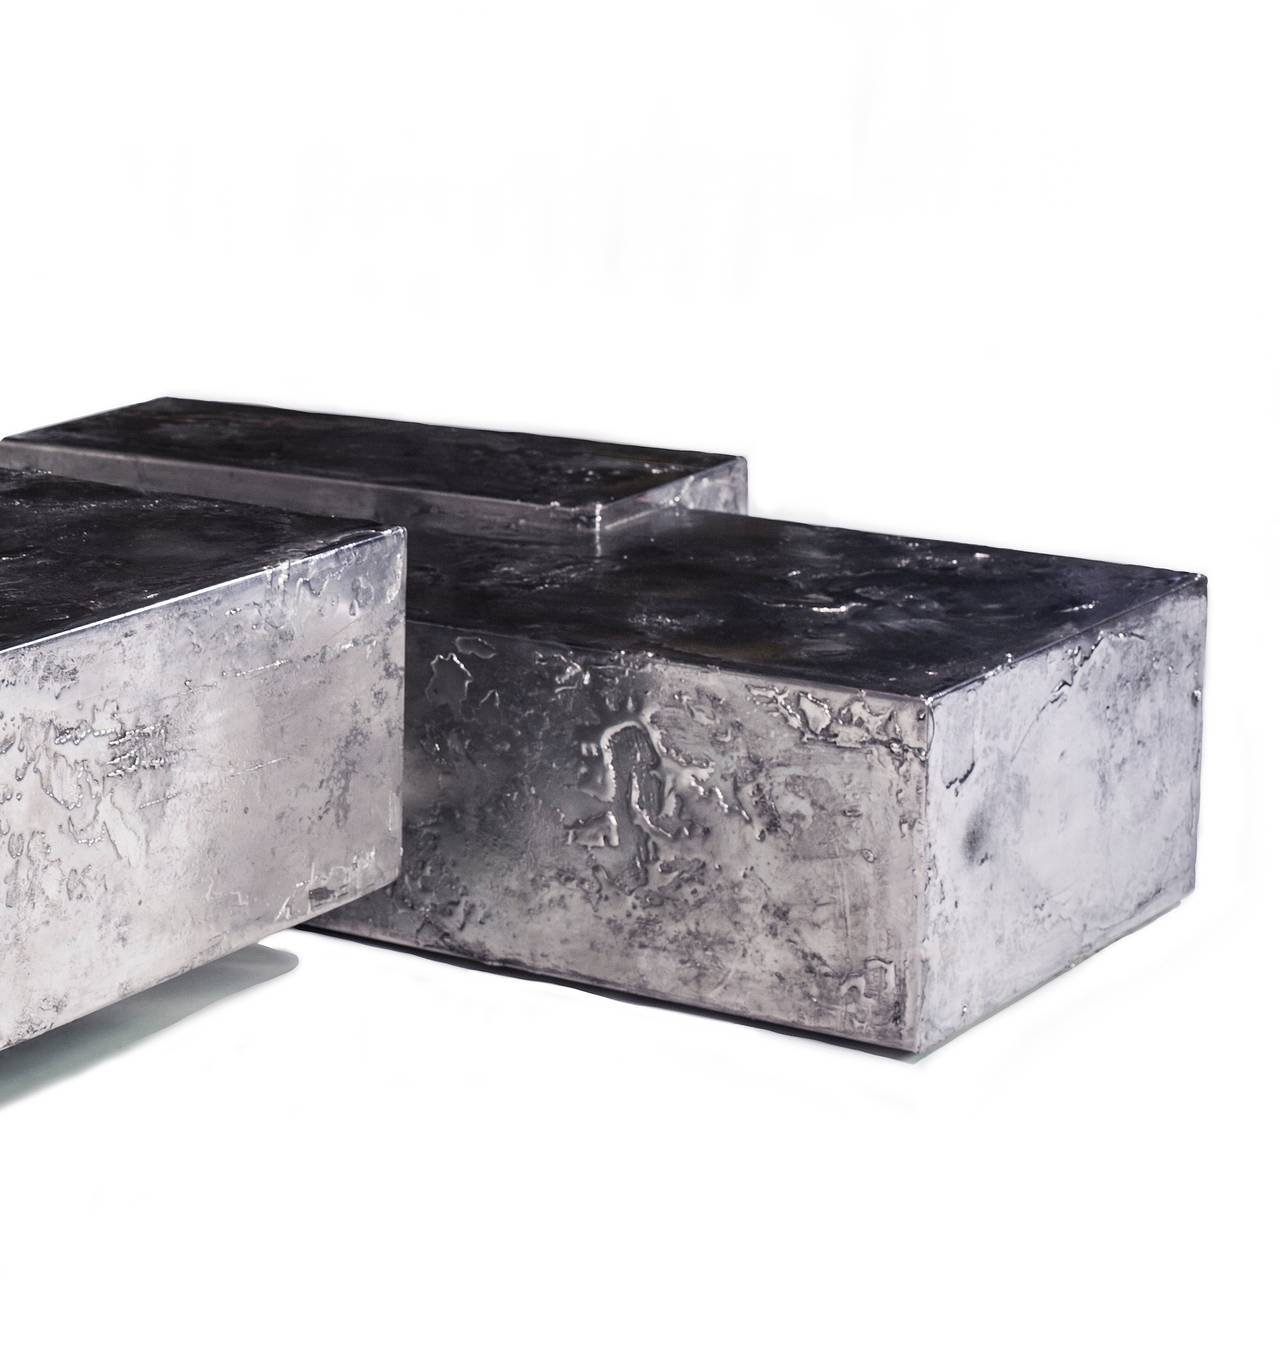 American Landscape Steel and Pewter Coffee Table by Designer Christopher Gentner For Sale